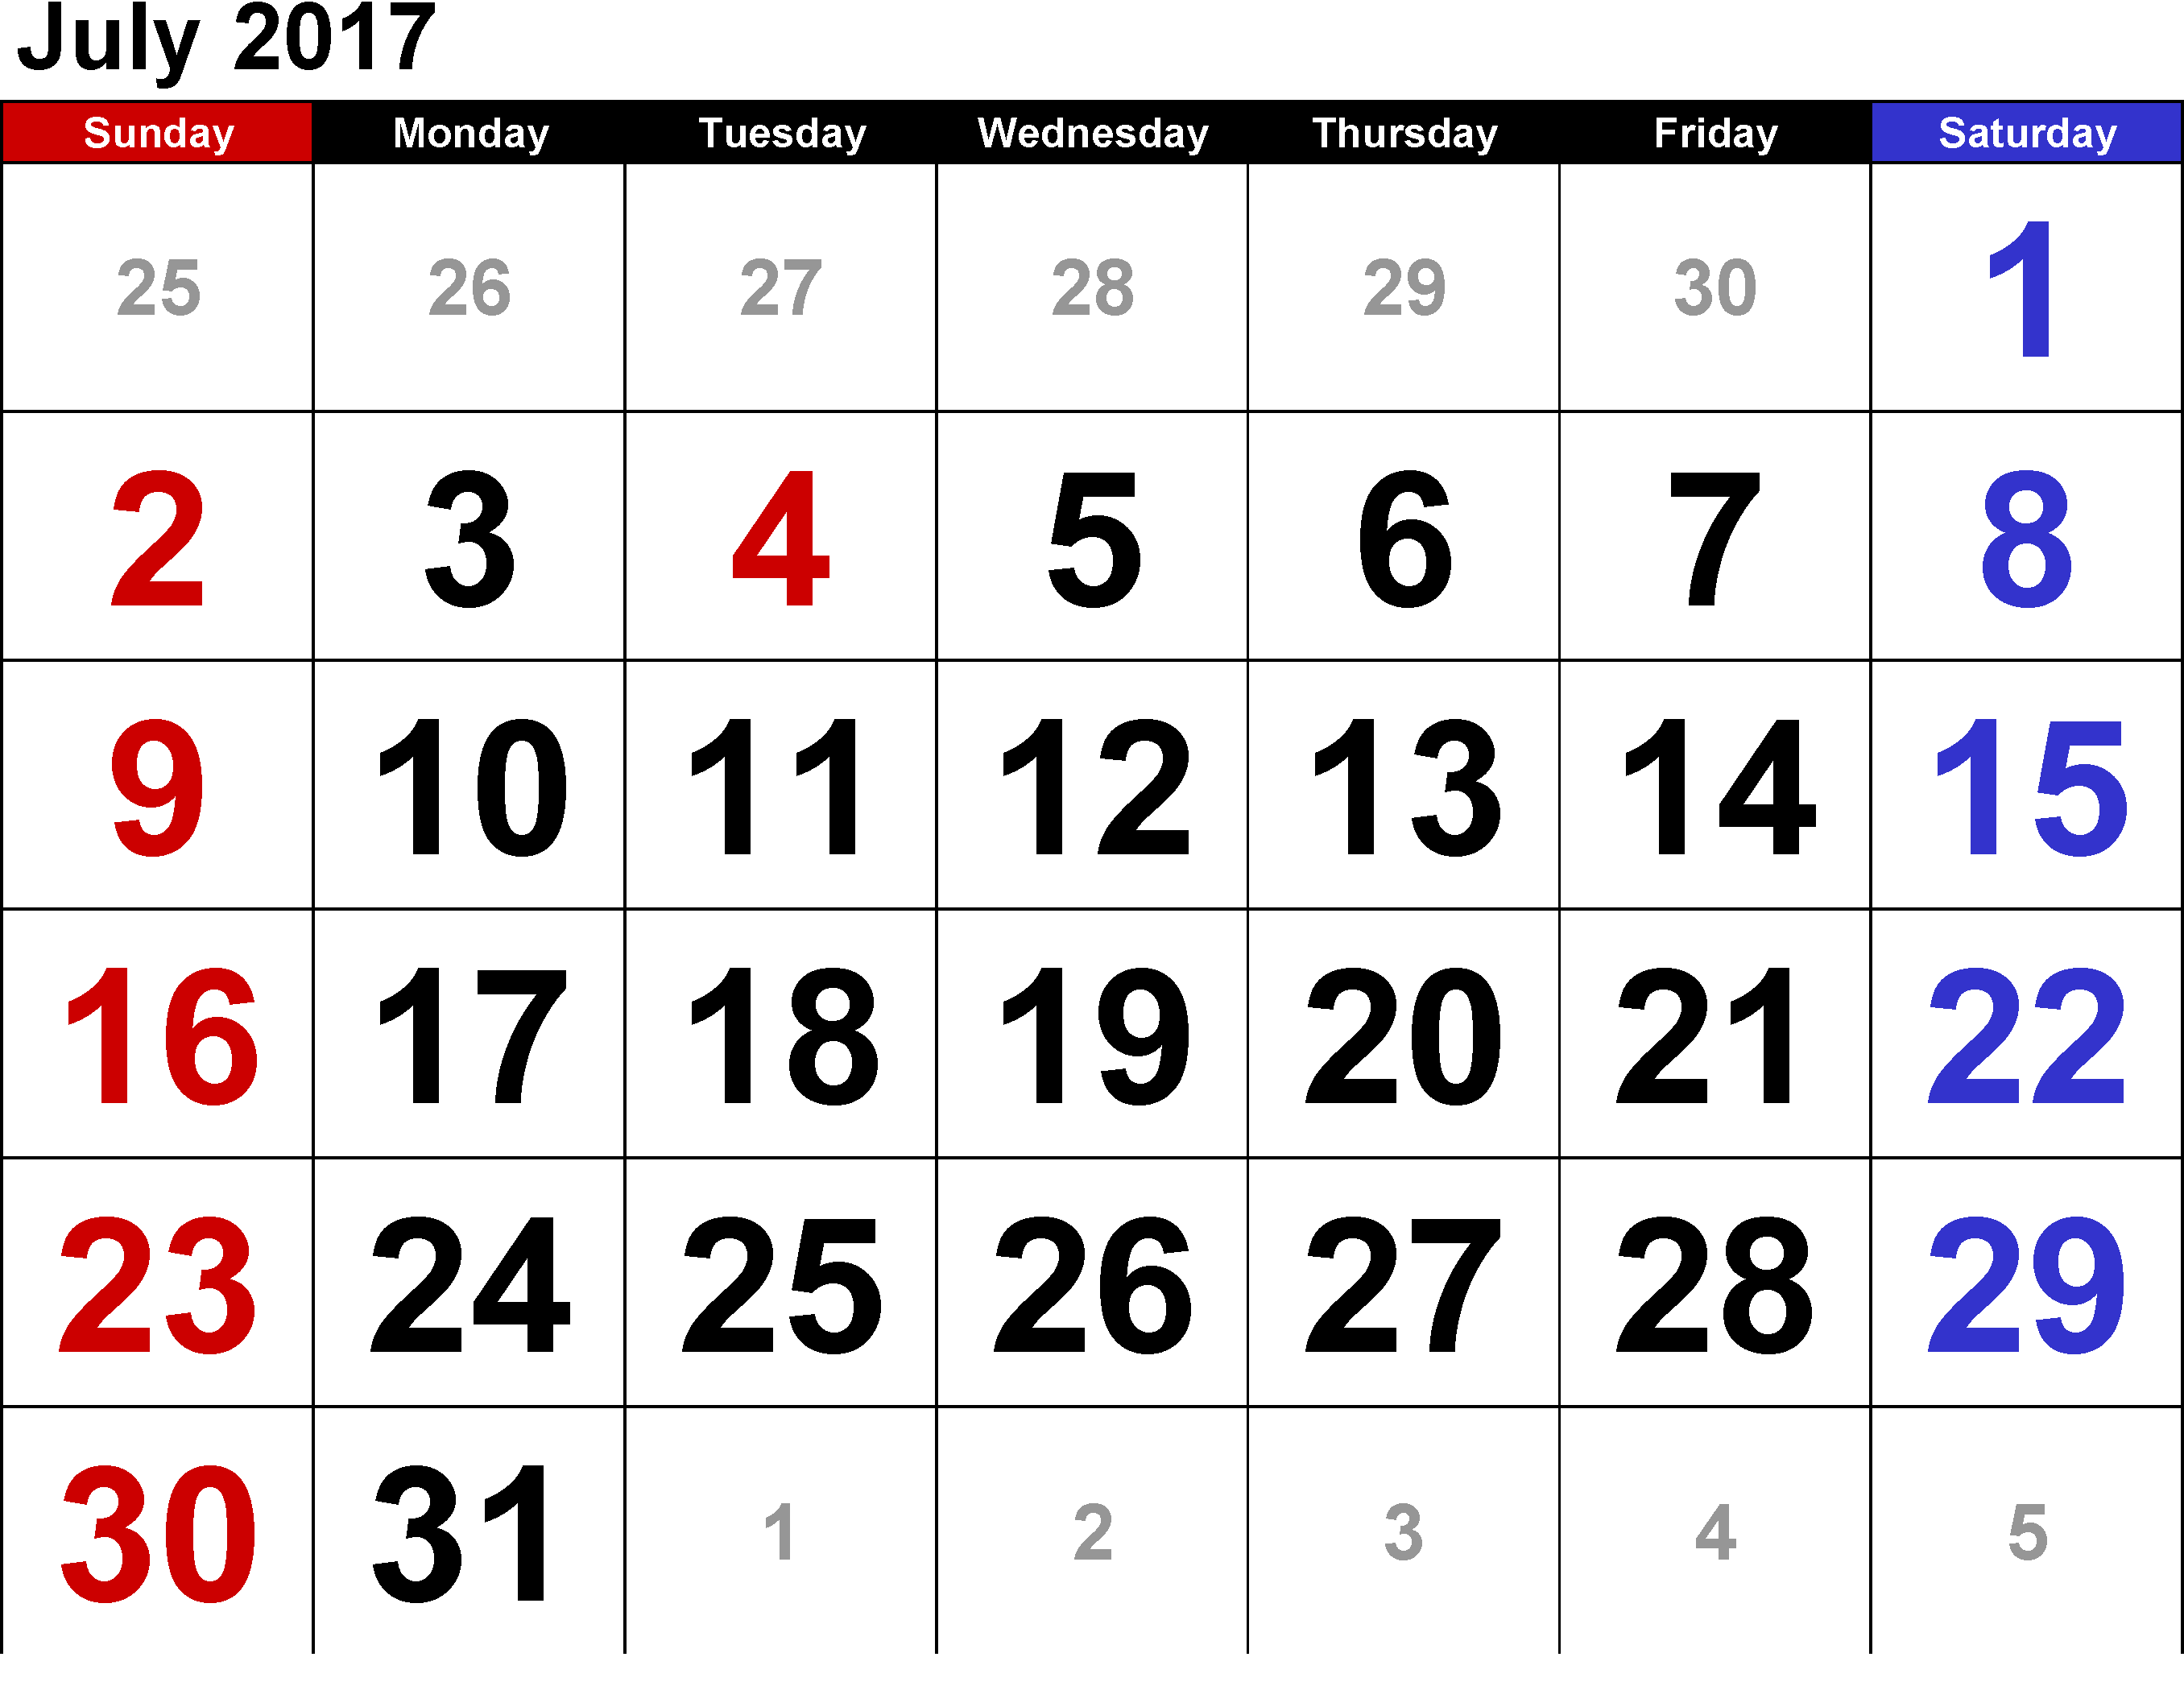 Download July 2017 monthly calendars free for whatsapp